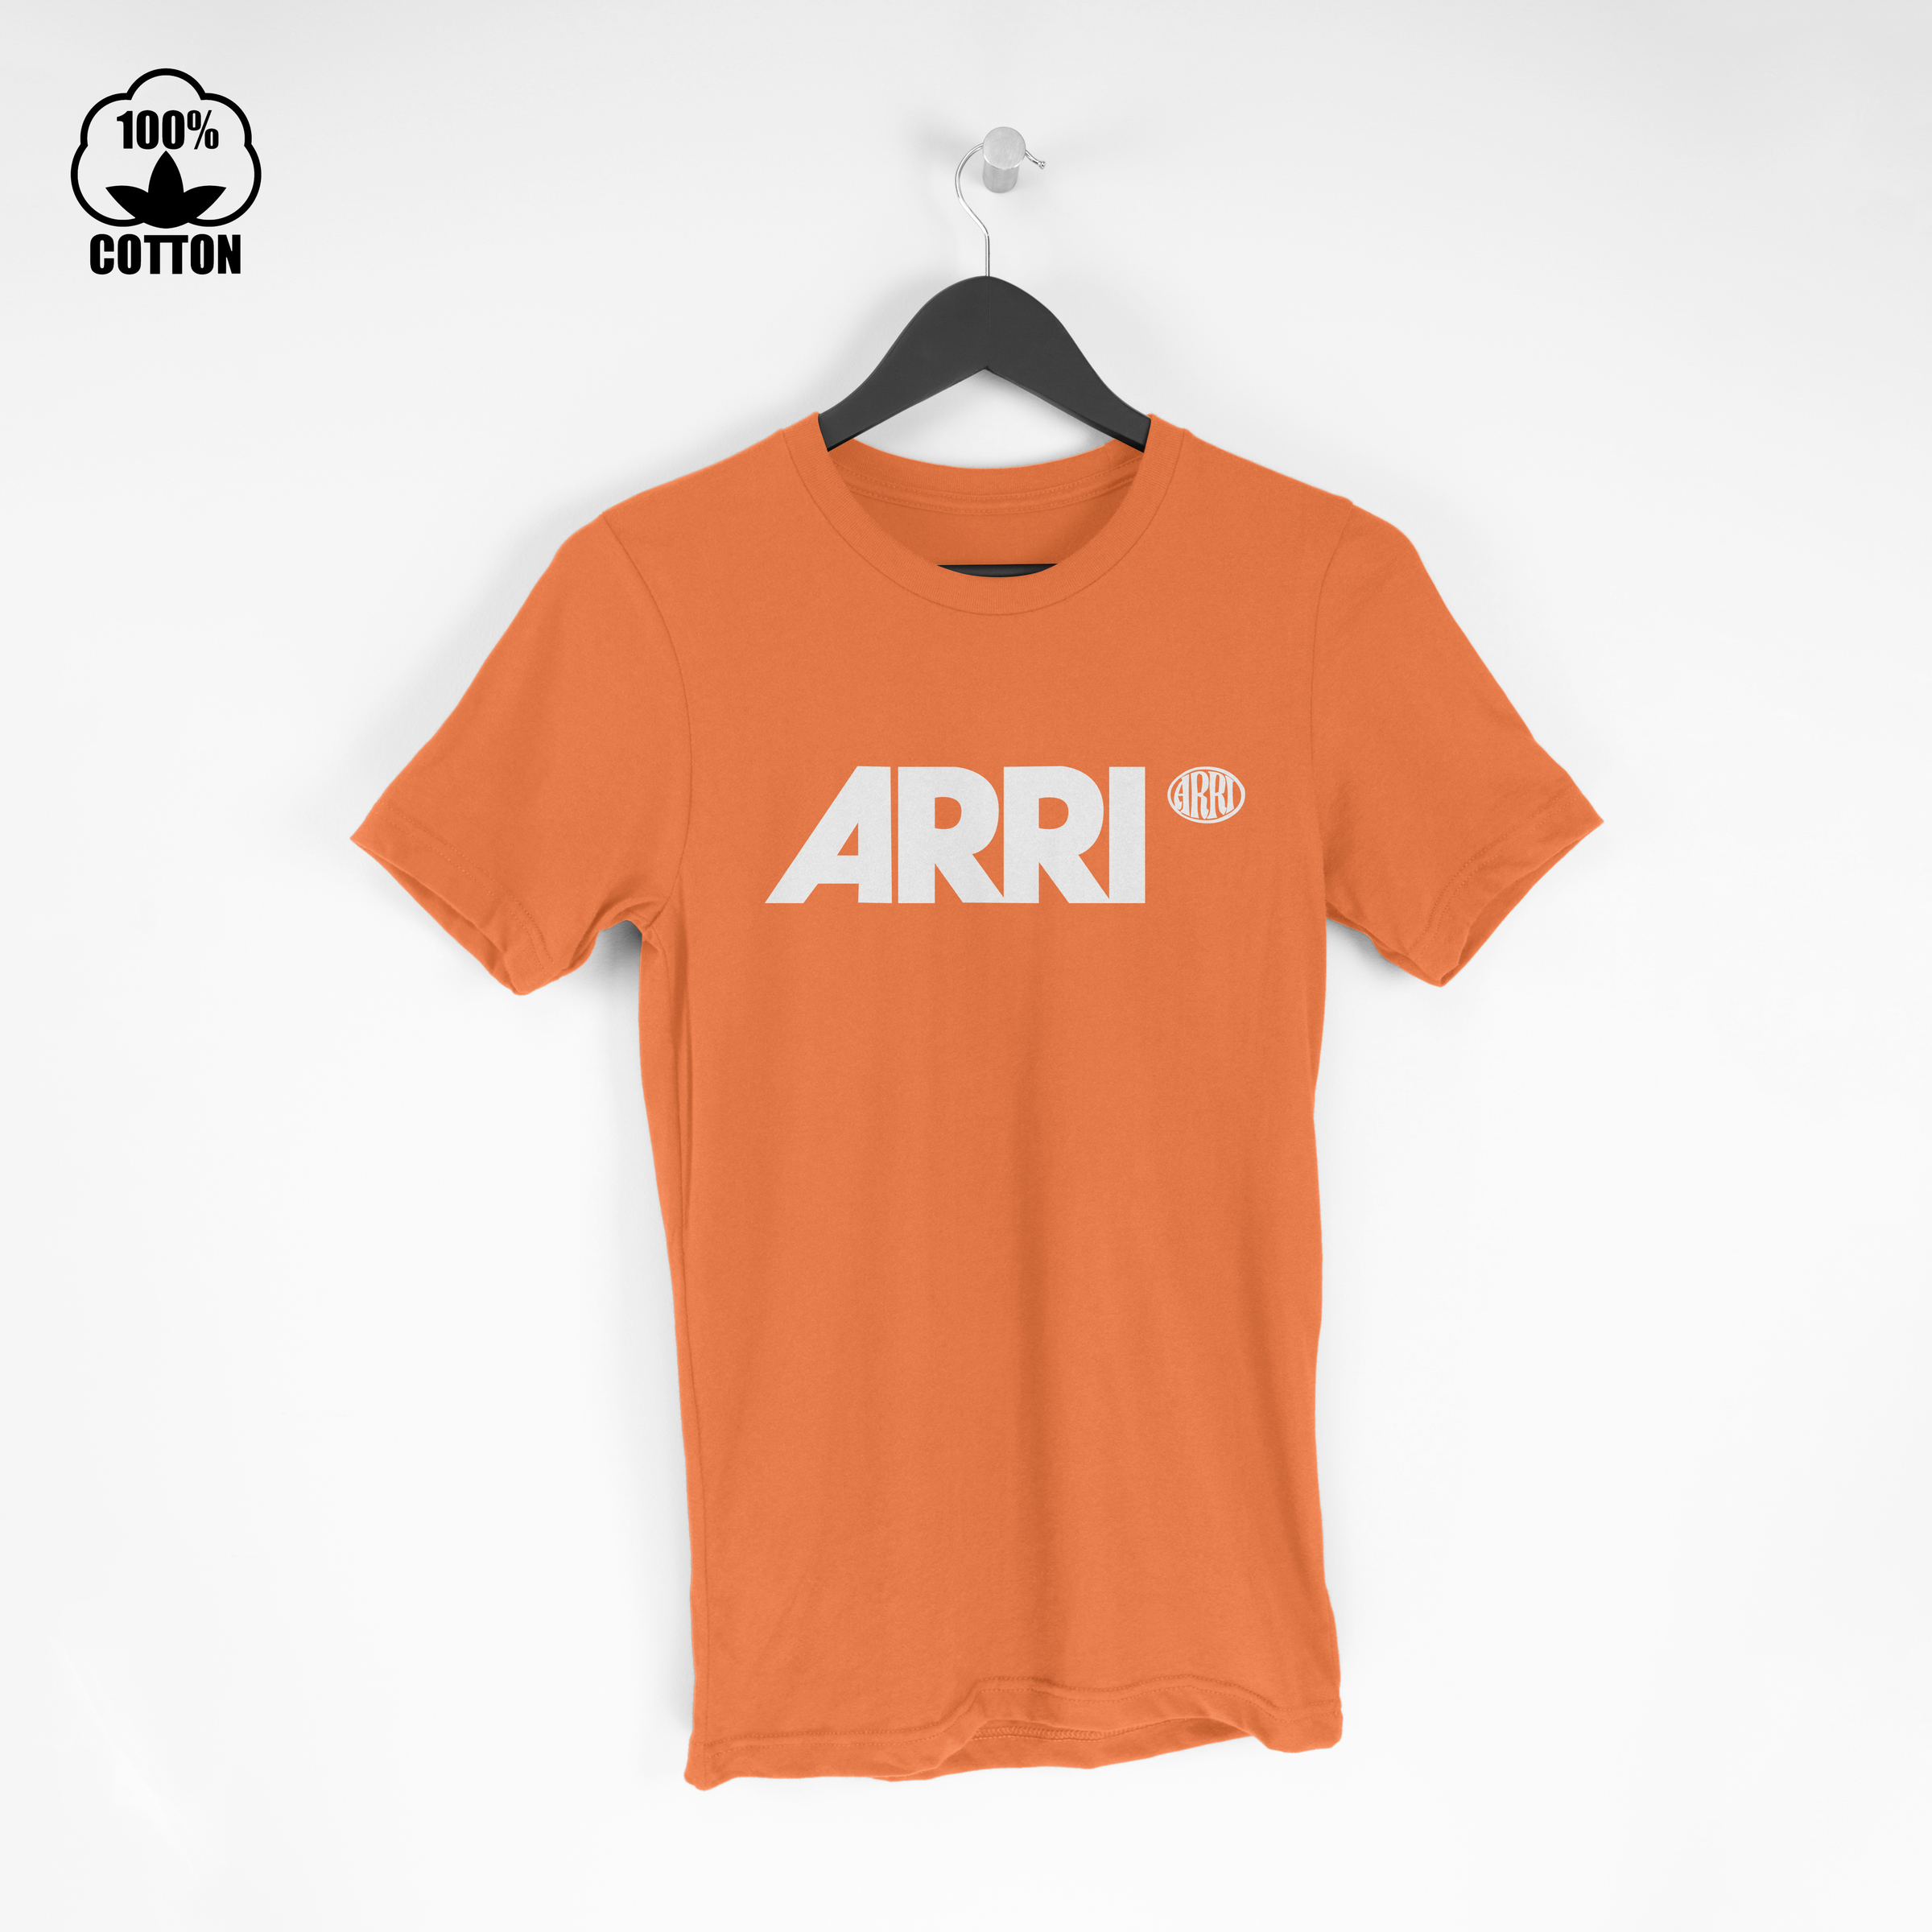 Arri Inspiring Your Vision Small Logo New Mens Tshirt Tee Size S-XXL Chocolate.jpg